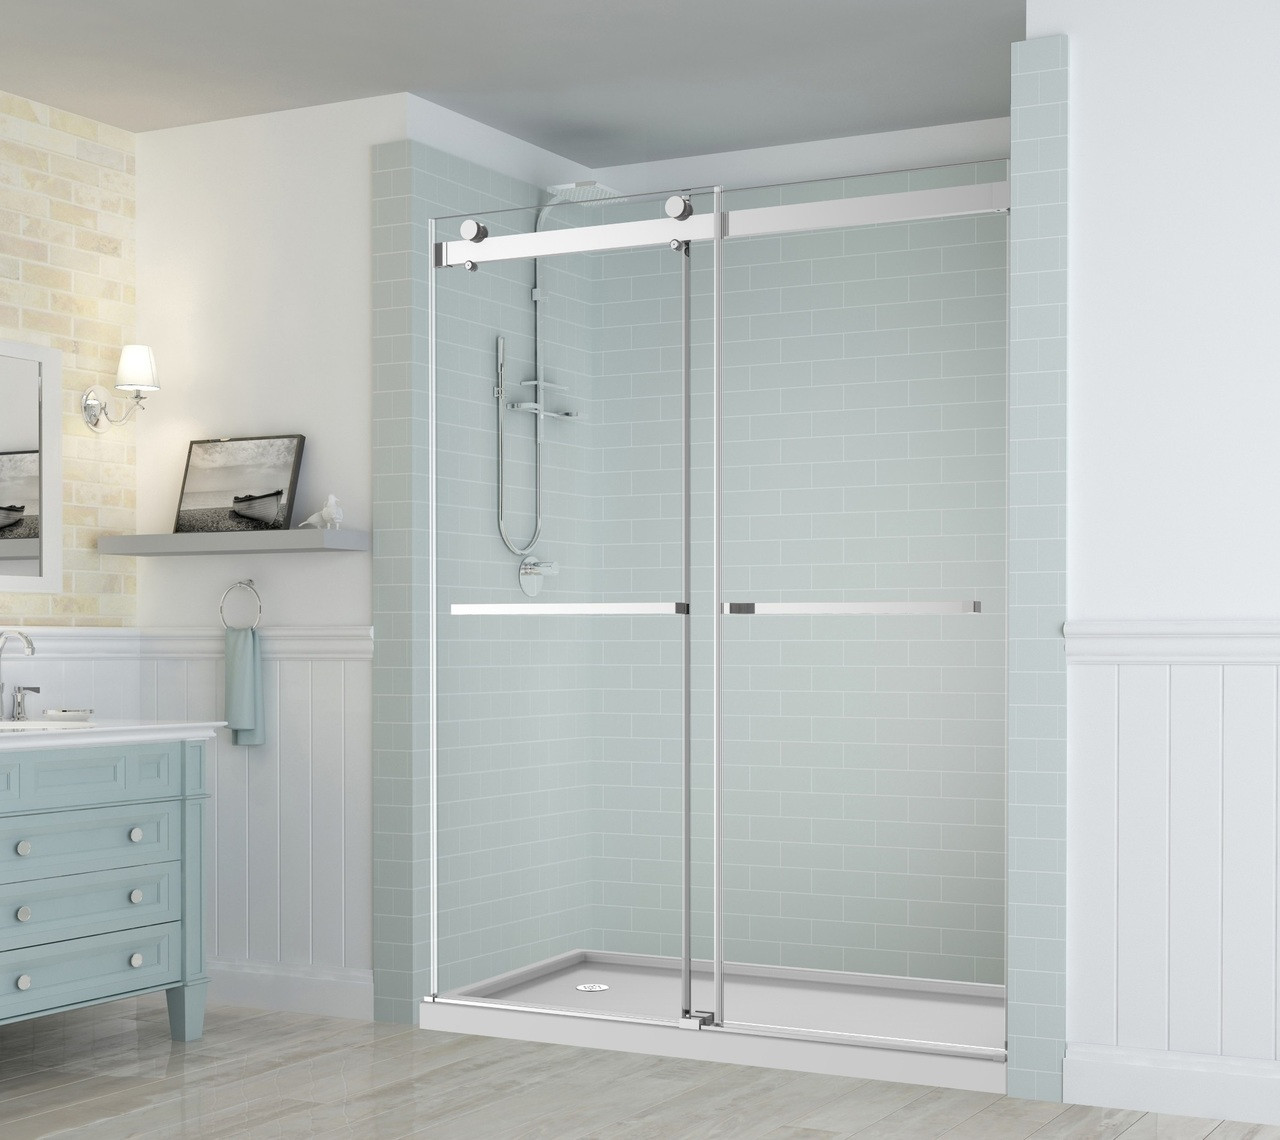 Frameless Shower Doors.Sdr977 Rivage Frameless Dual Bypass Sliding Alcove Shower Door With